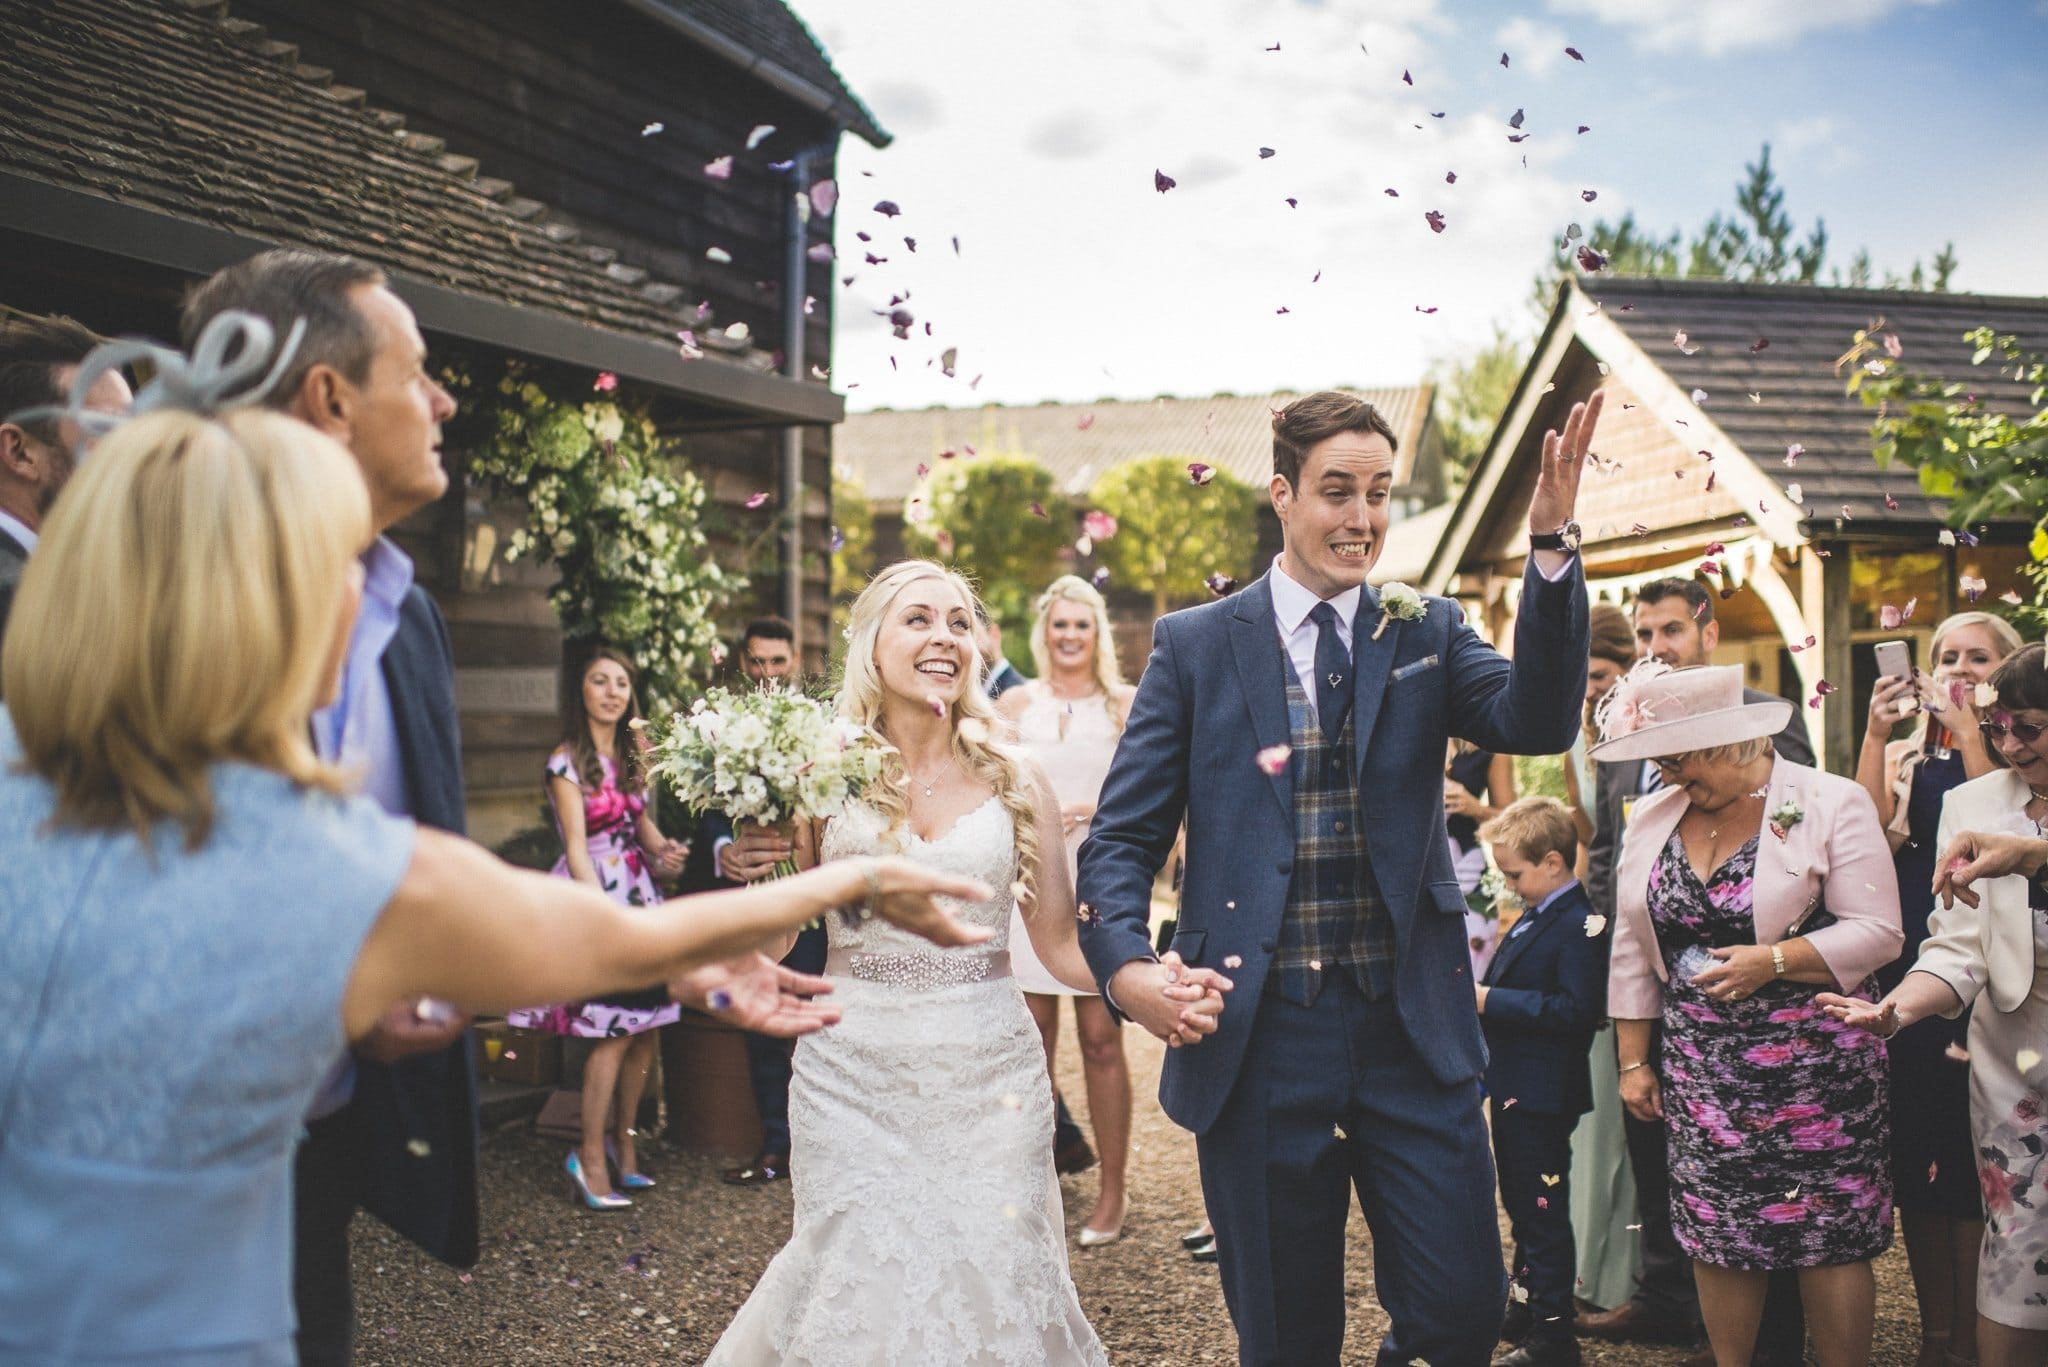 The couple walk through a shower of sweet pea petals as guests throw confetti